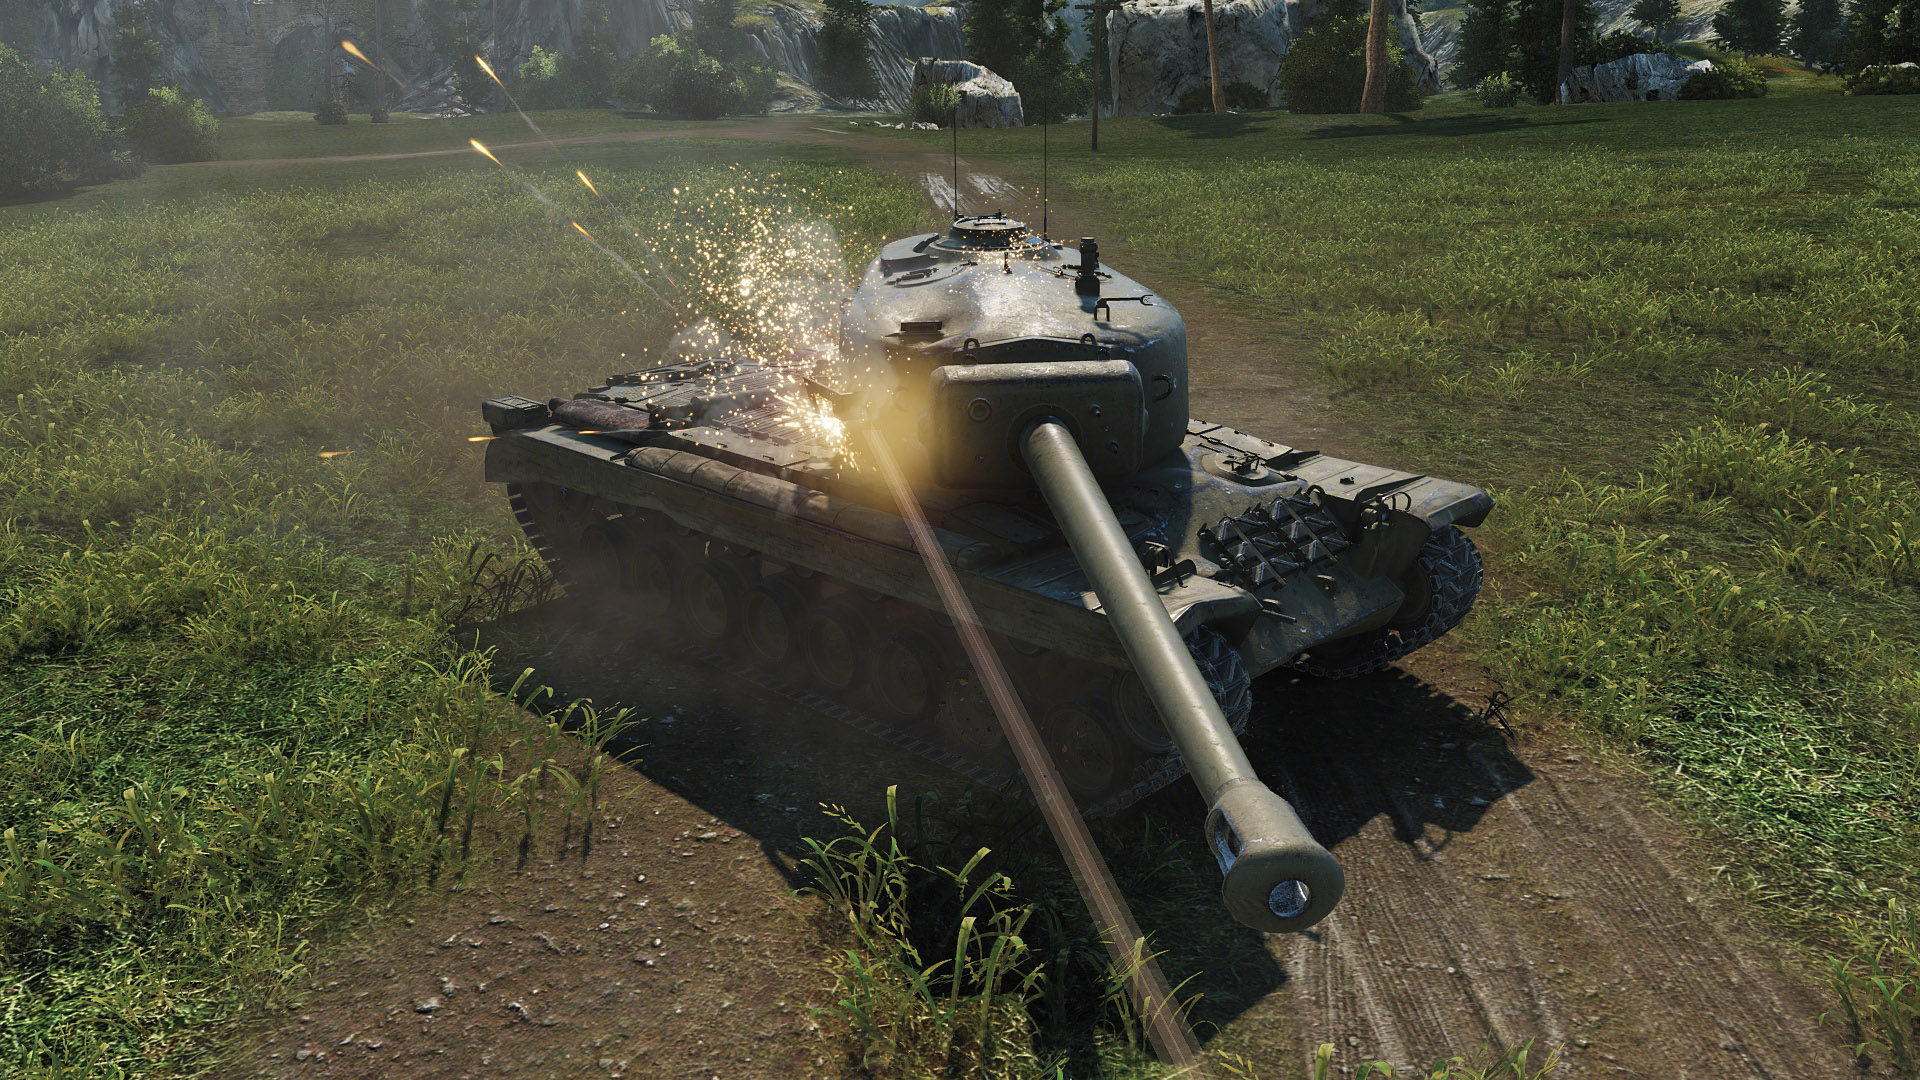 Though at this point it's a golden oldie, the T34 remains one of the best tanks to use when farming credits. It manages to meet the requirements listed in this article, such a great penetration values!